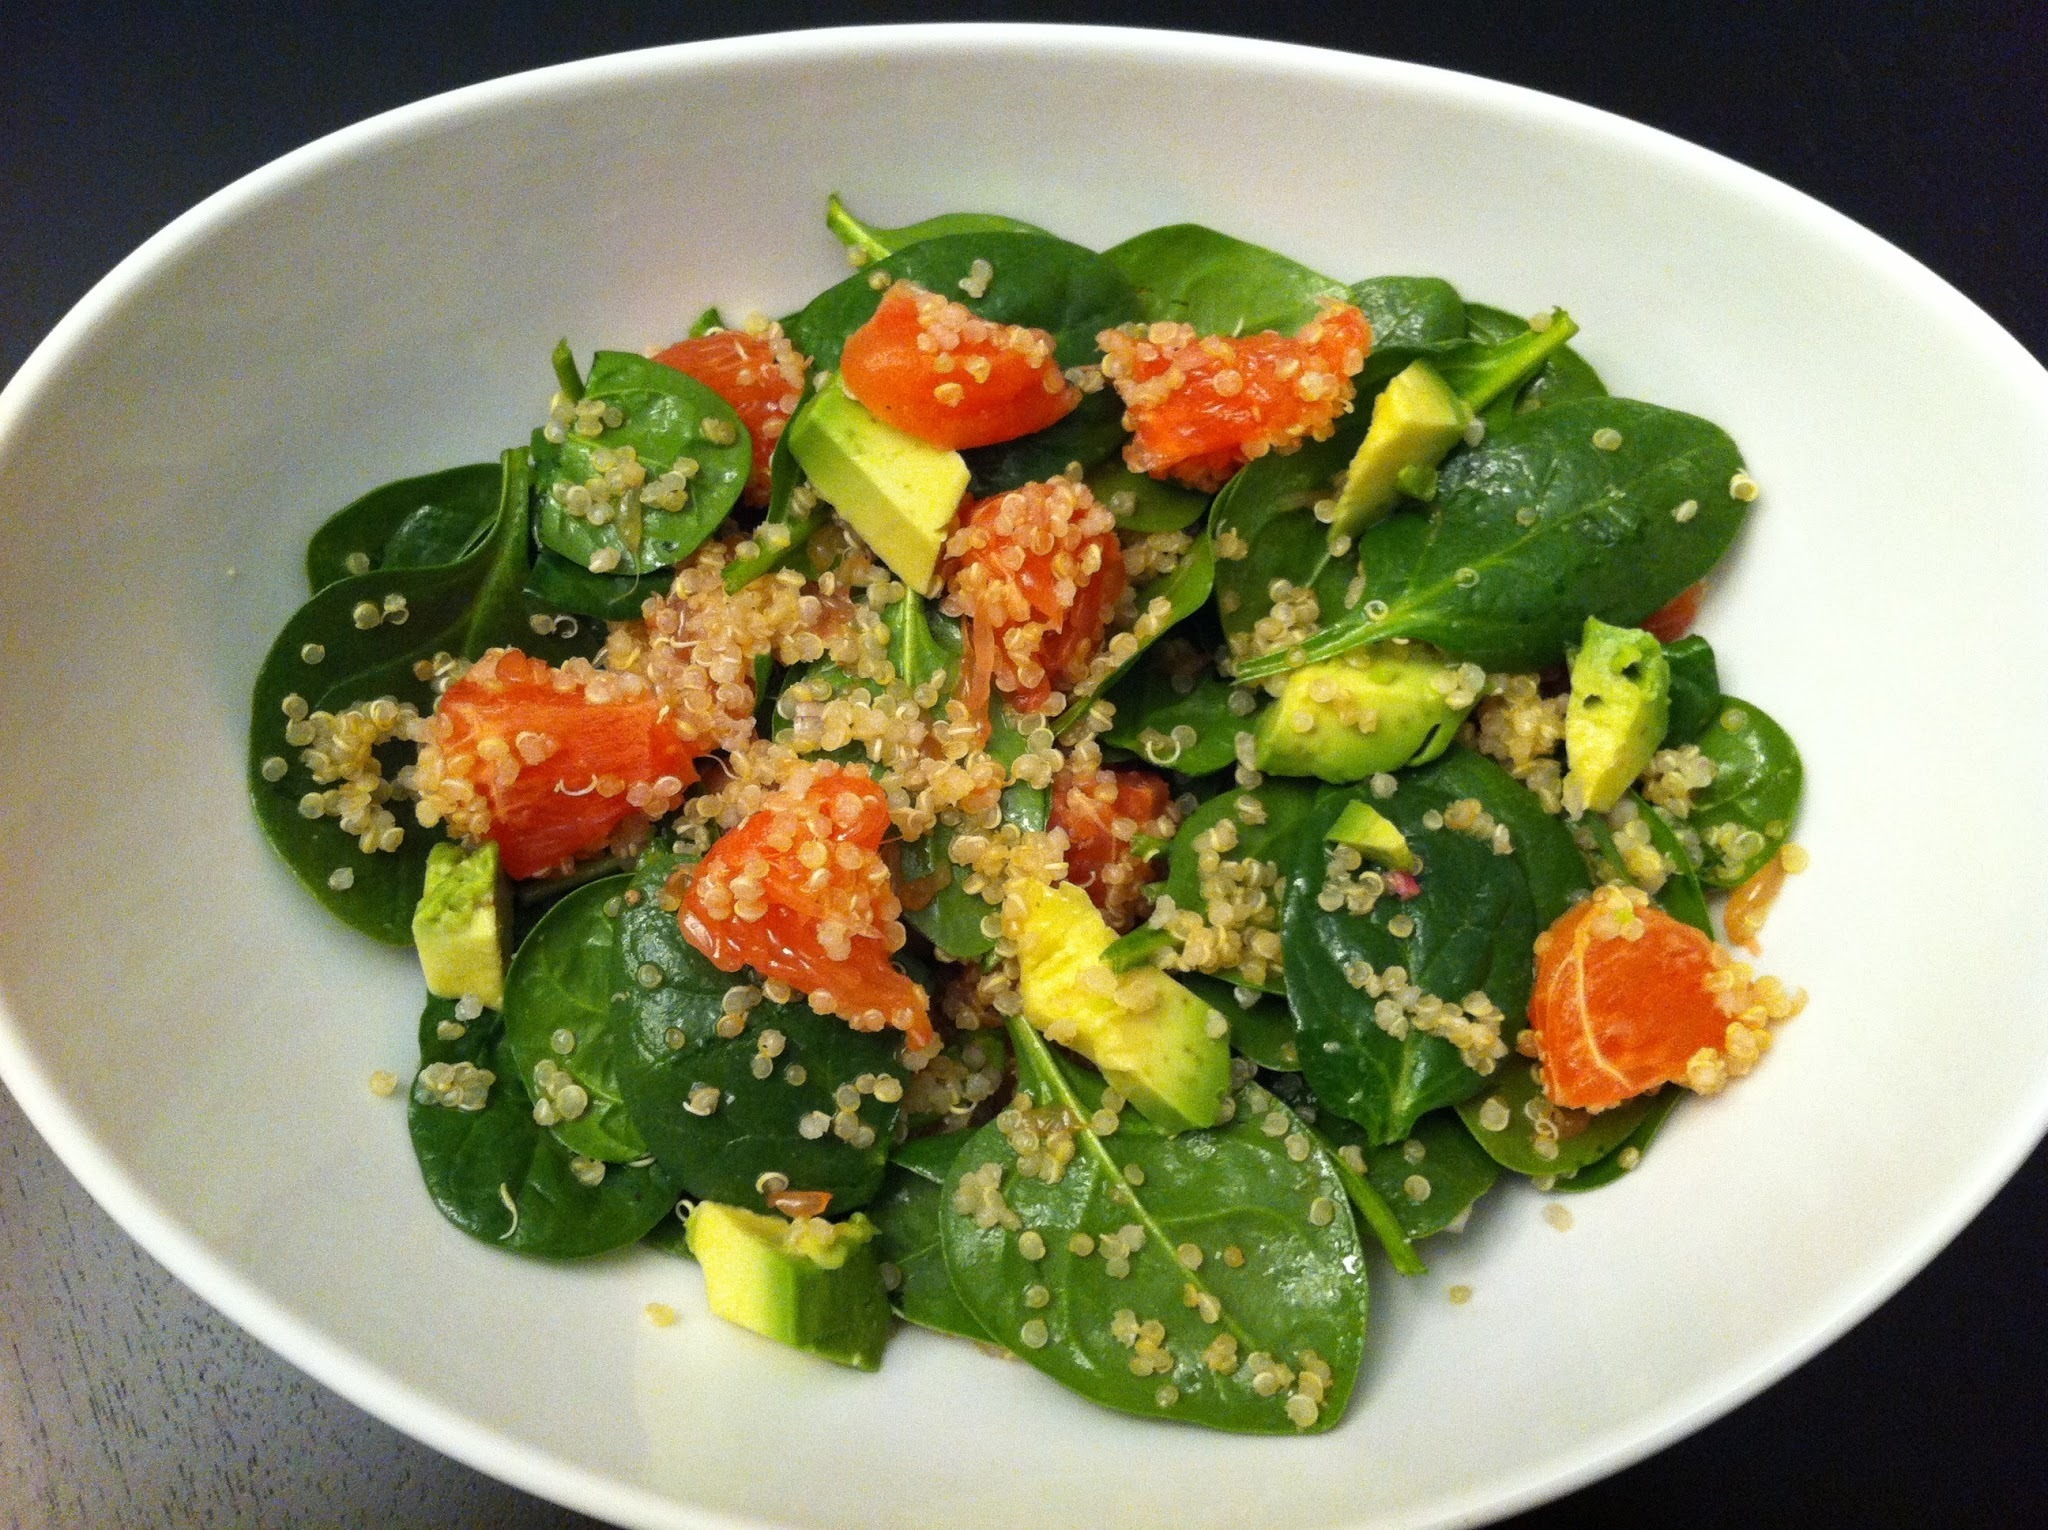 Spinach Quinoa Salad with Grapefruit and Avocado